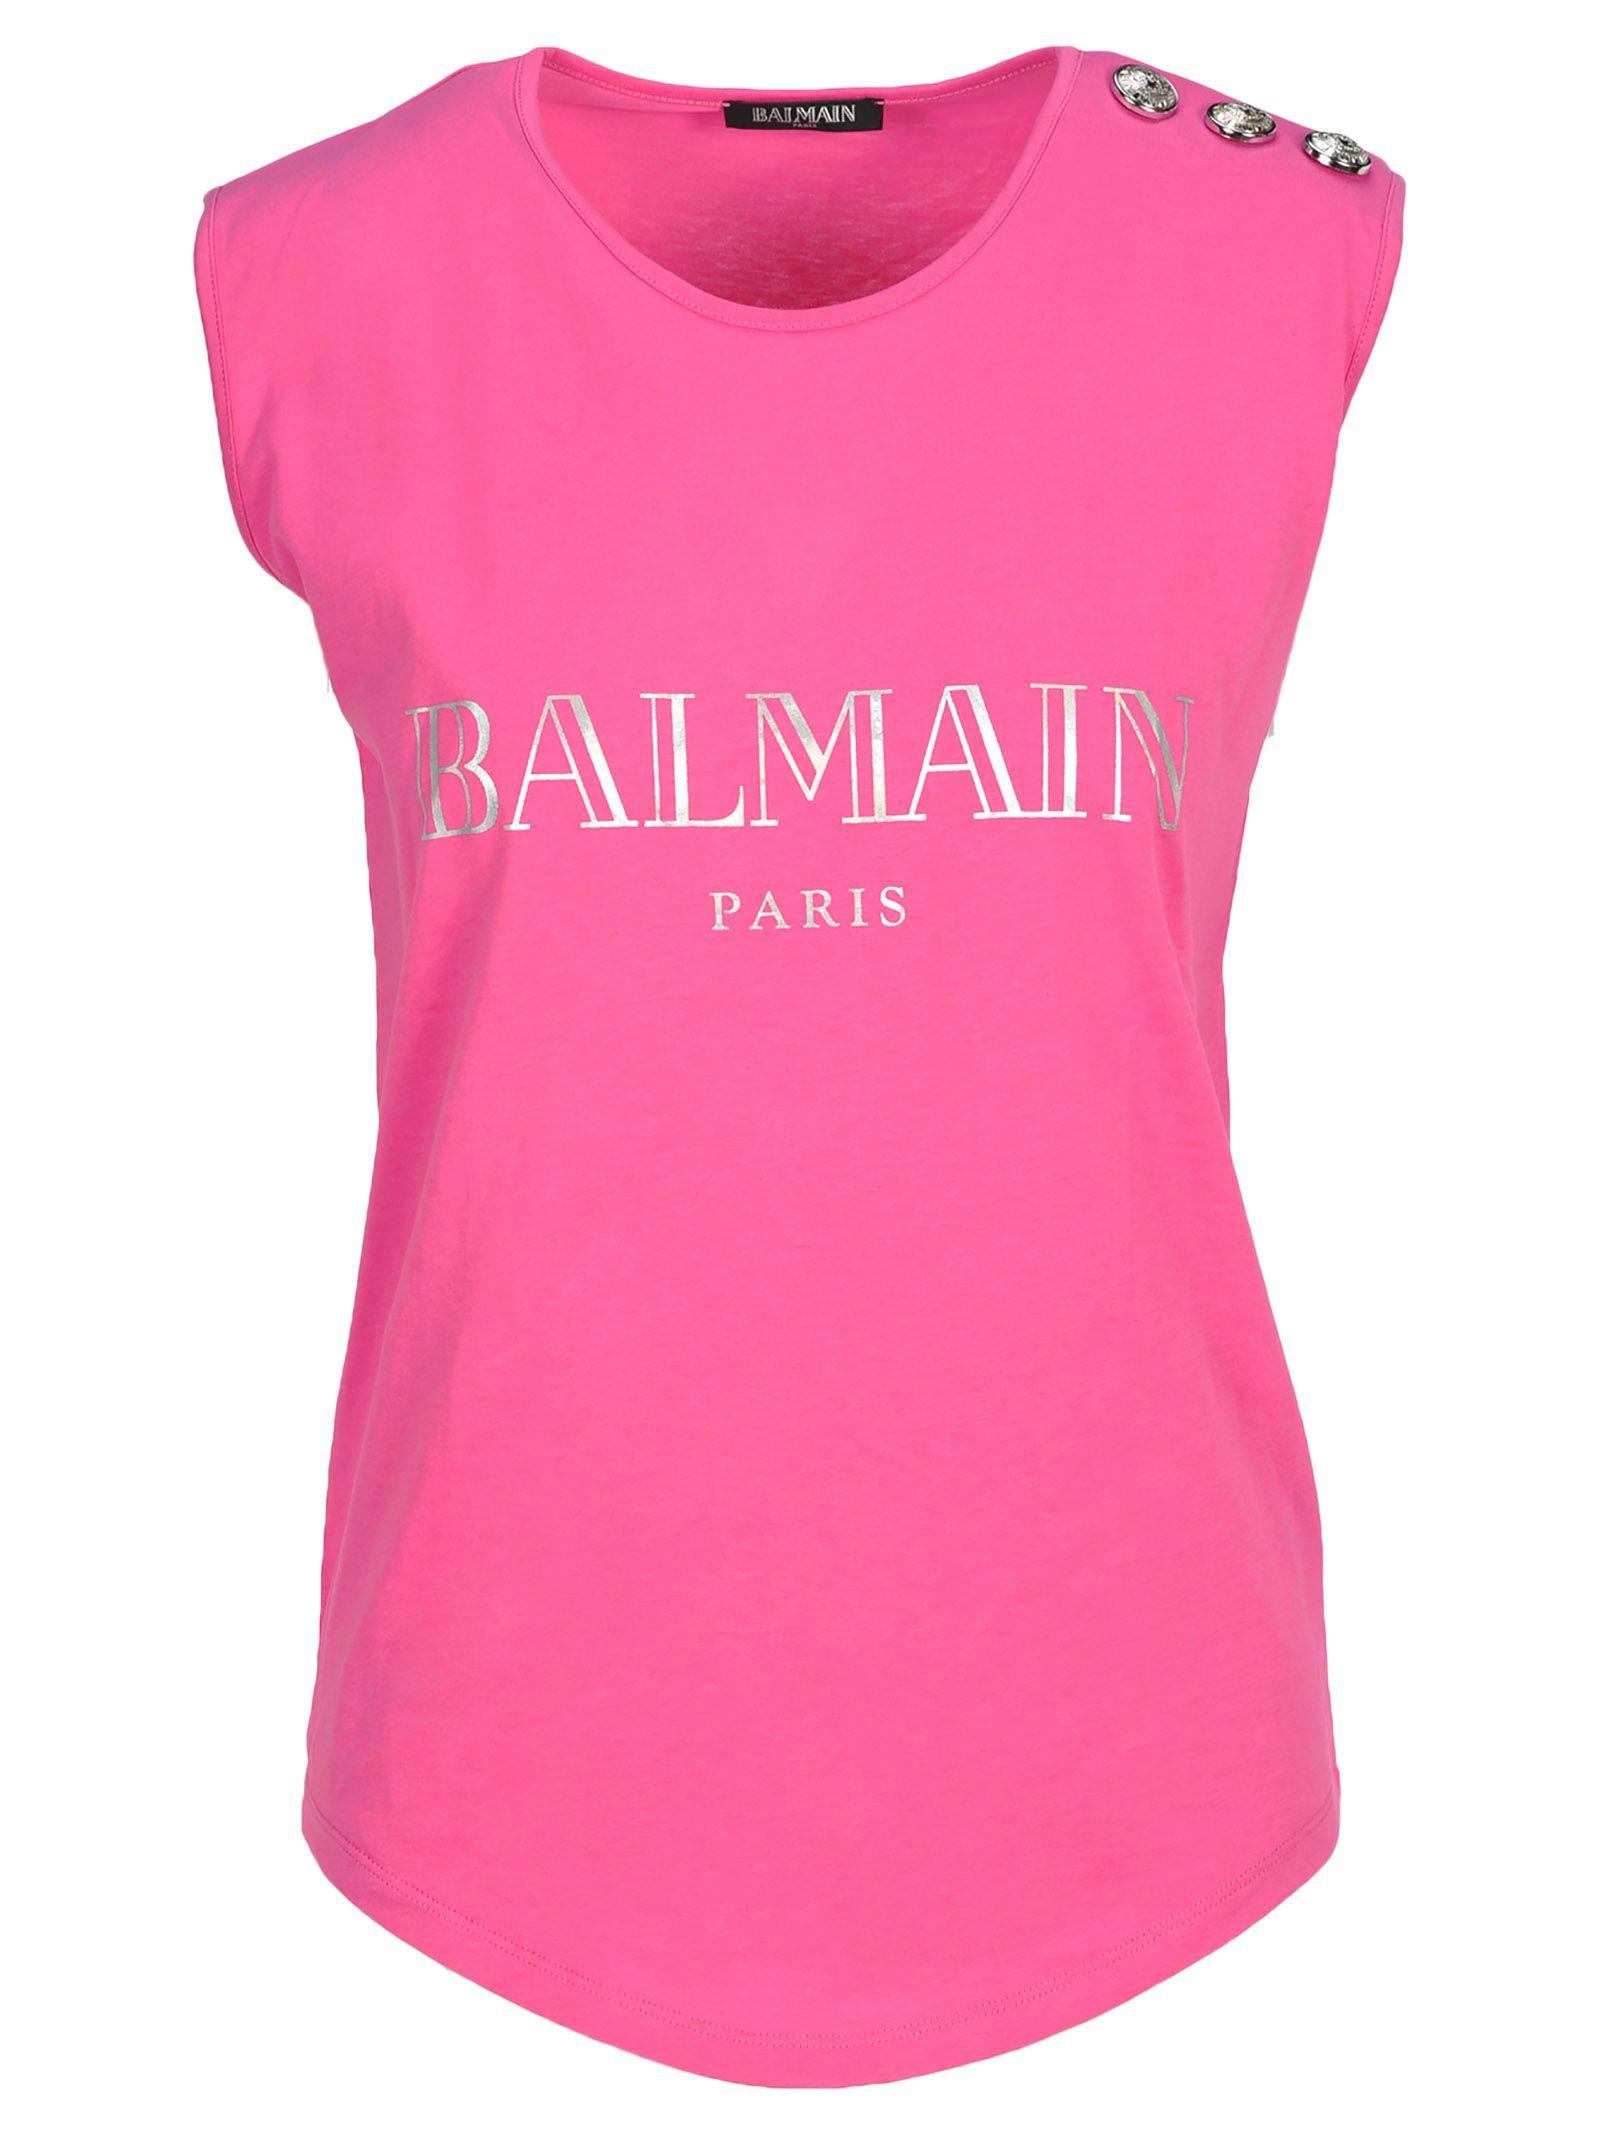 Balmain Tshirt Top Logo In Rose